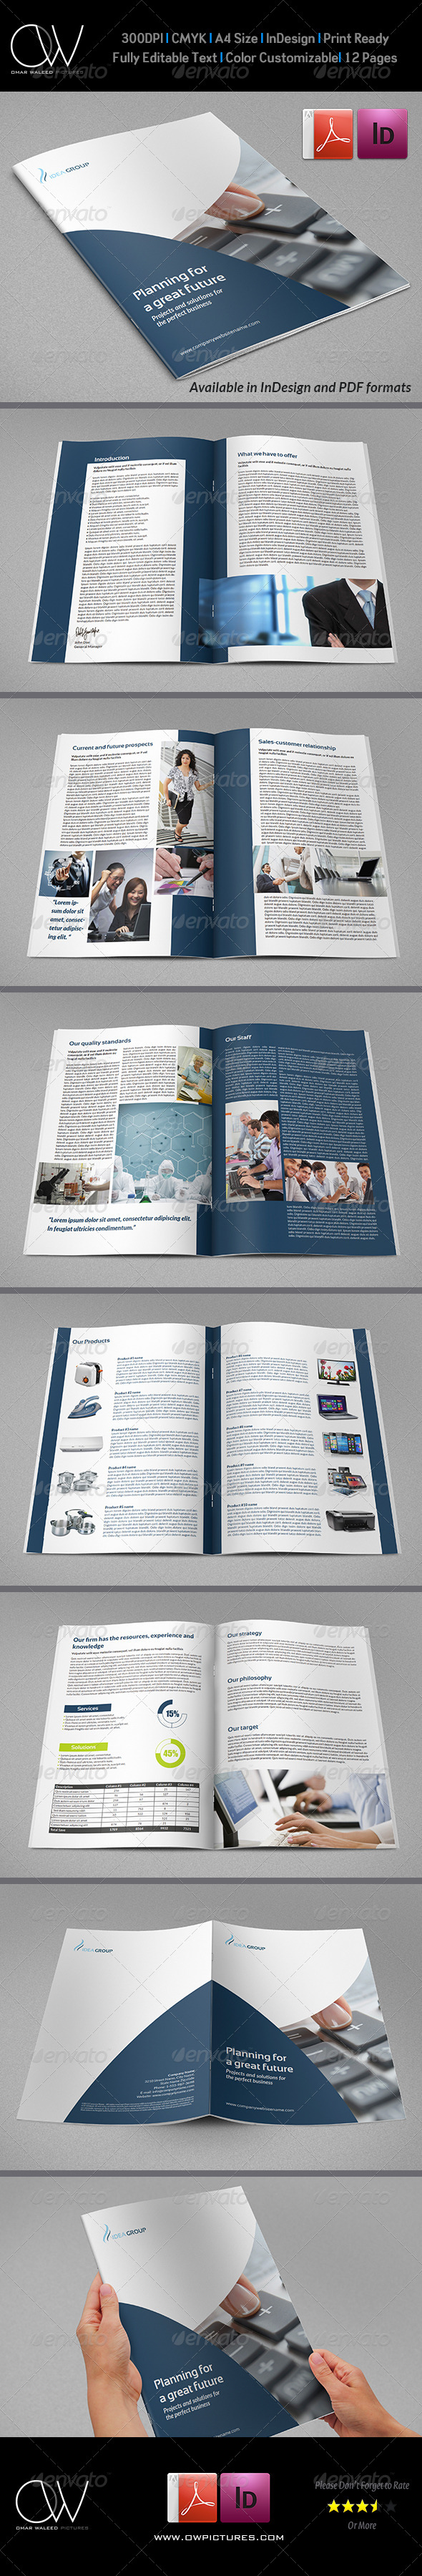 Corporate Brochure Template Vol.19 - 12 Pages - Corporate Brochures